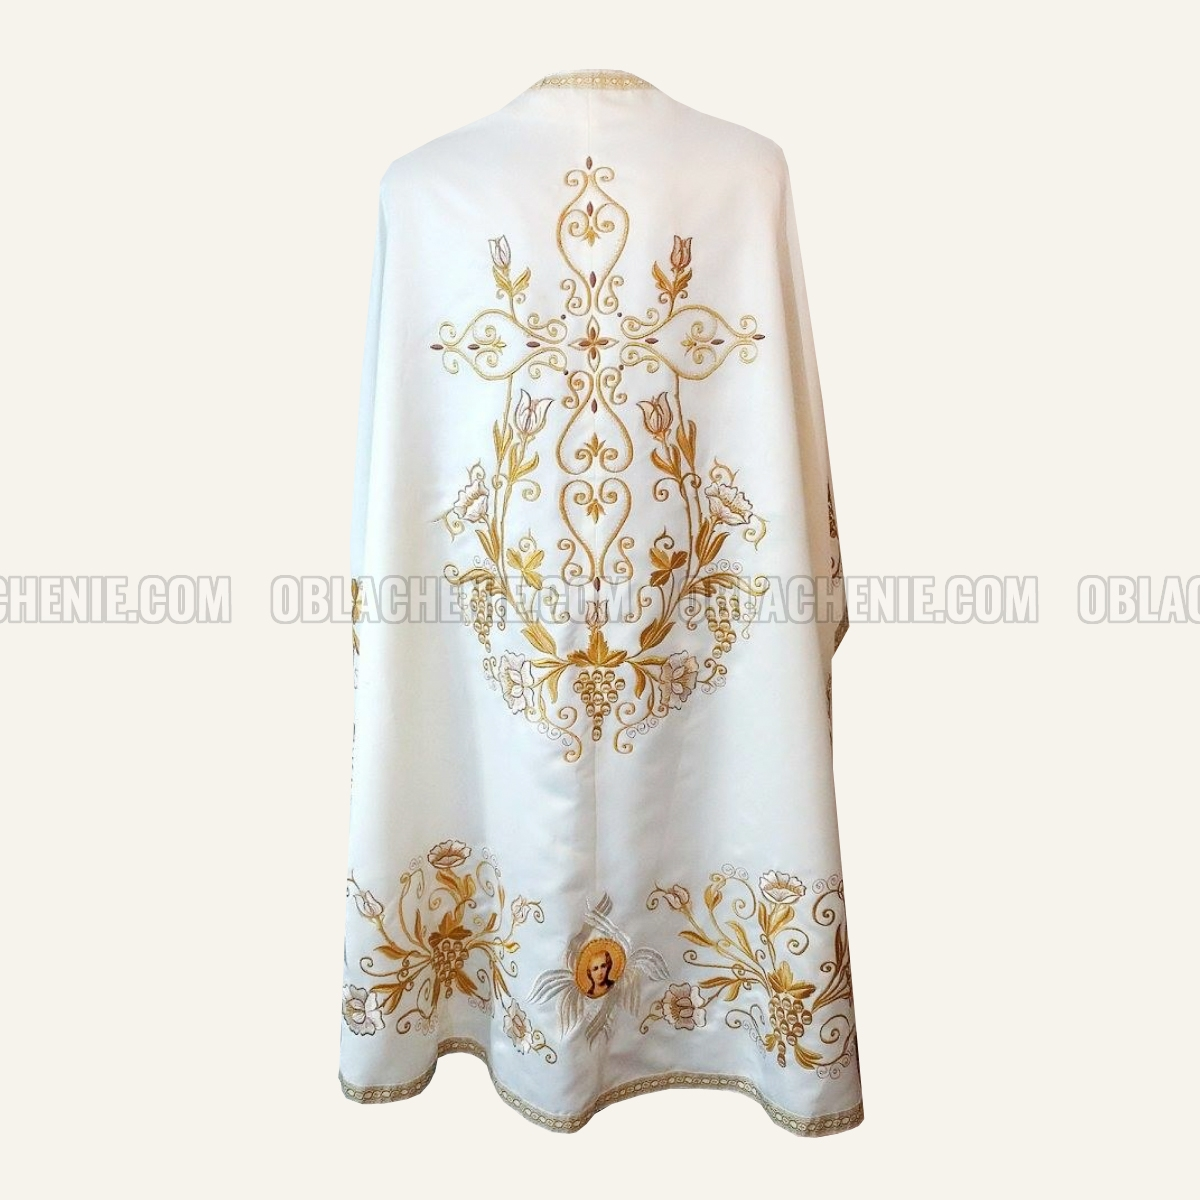 Embroidered priest's vestments 10253